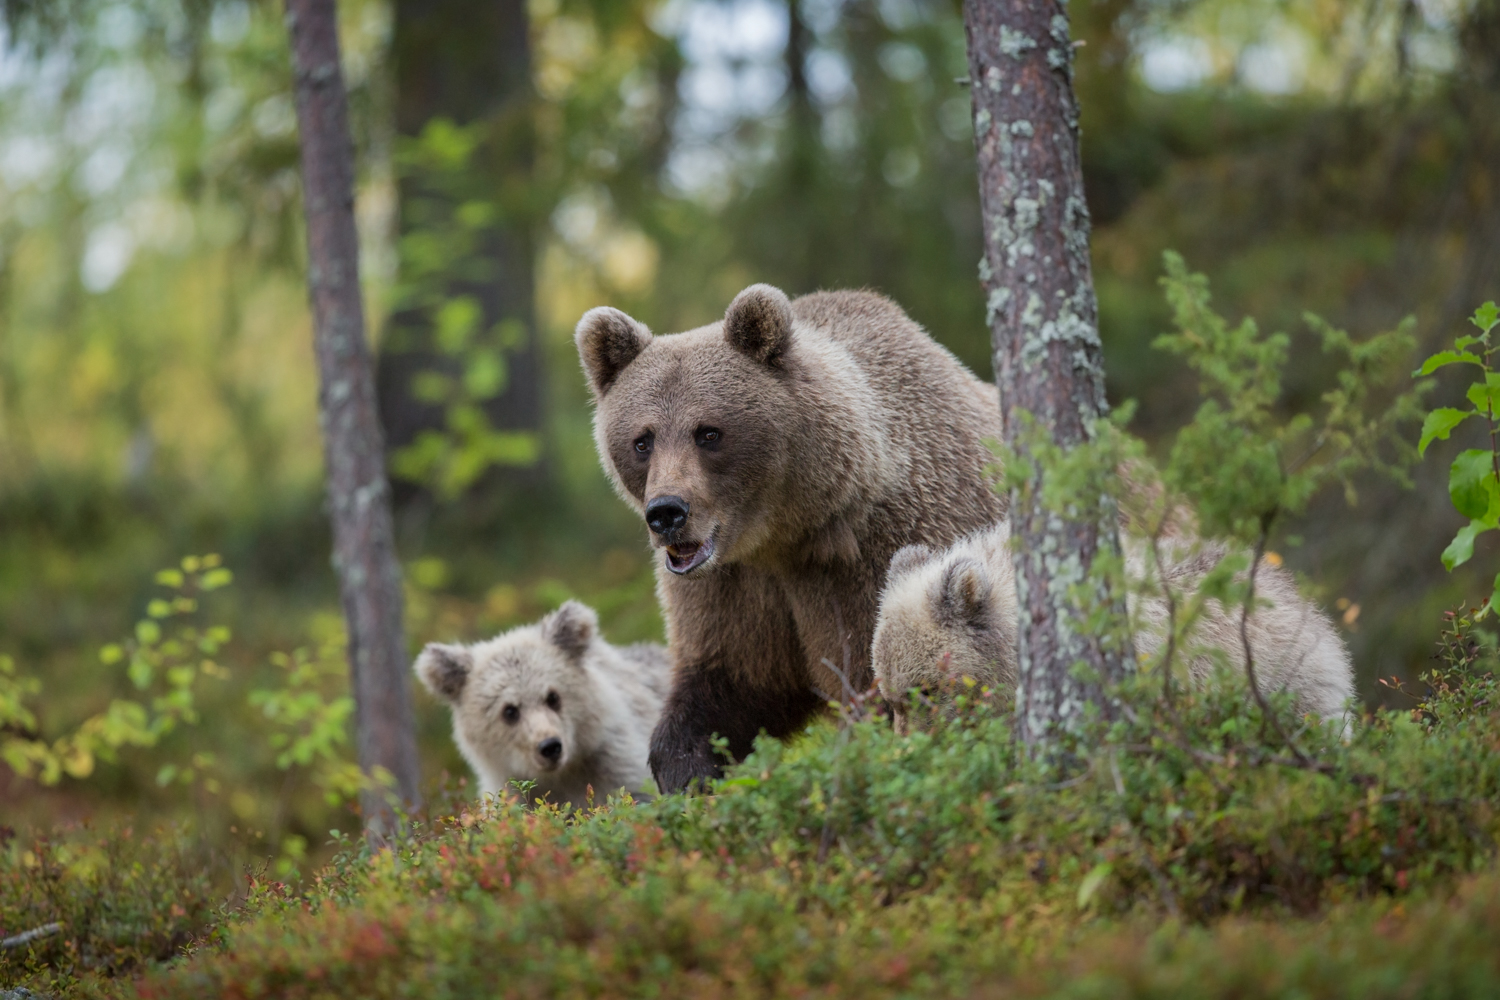 Mother_Cubs_0T2A8649-2.jpg